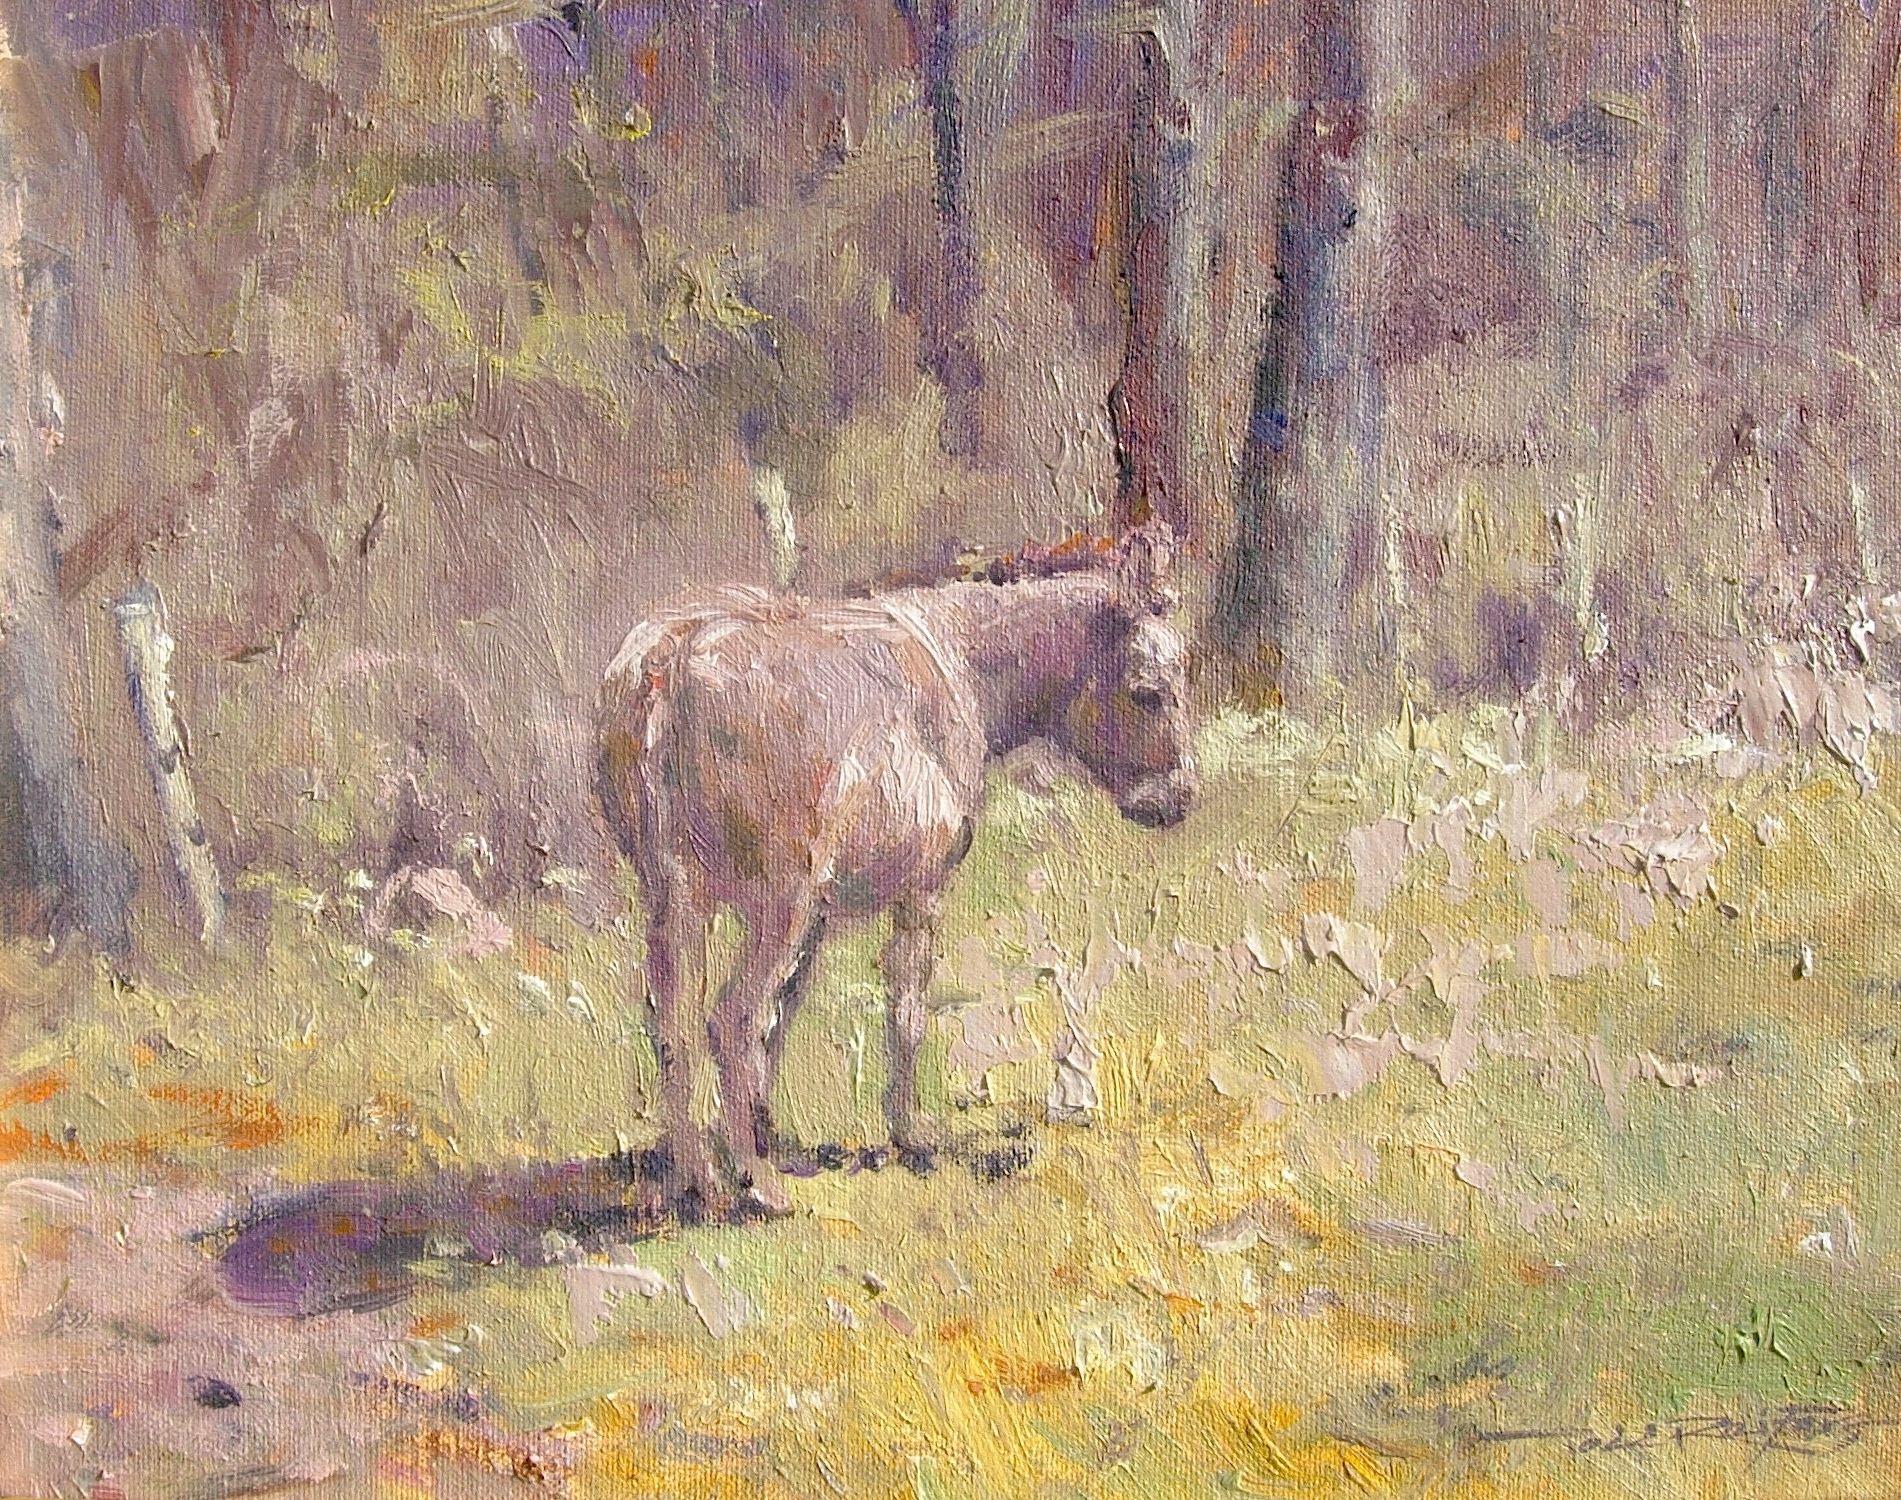 reifers-donkey-cropped